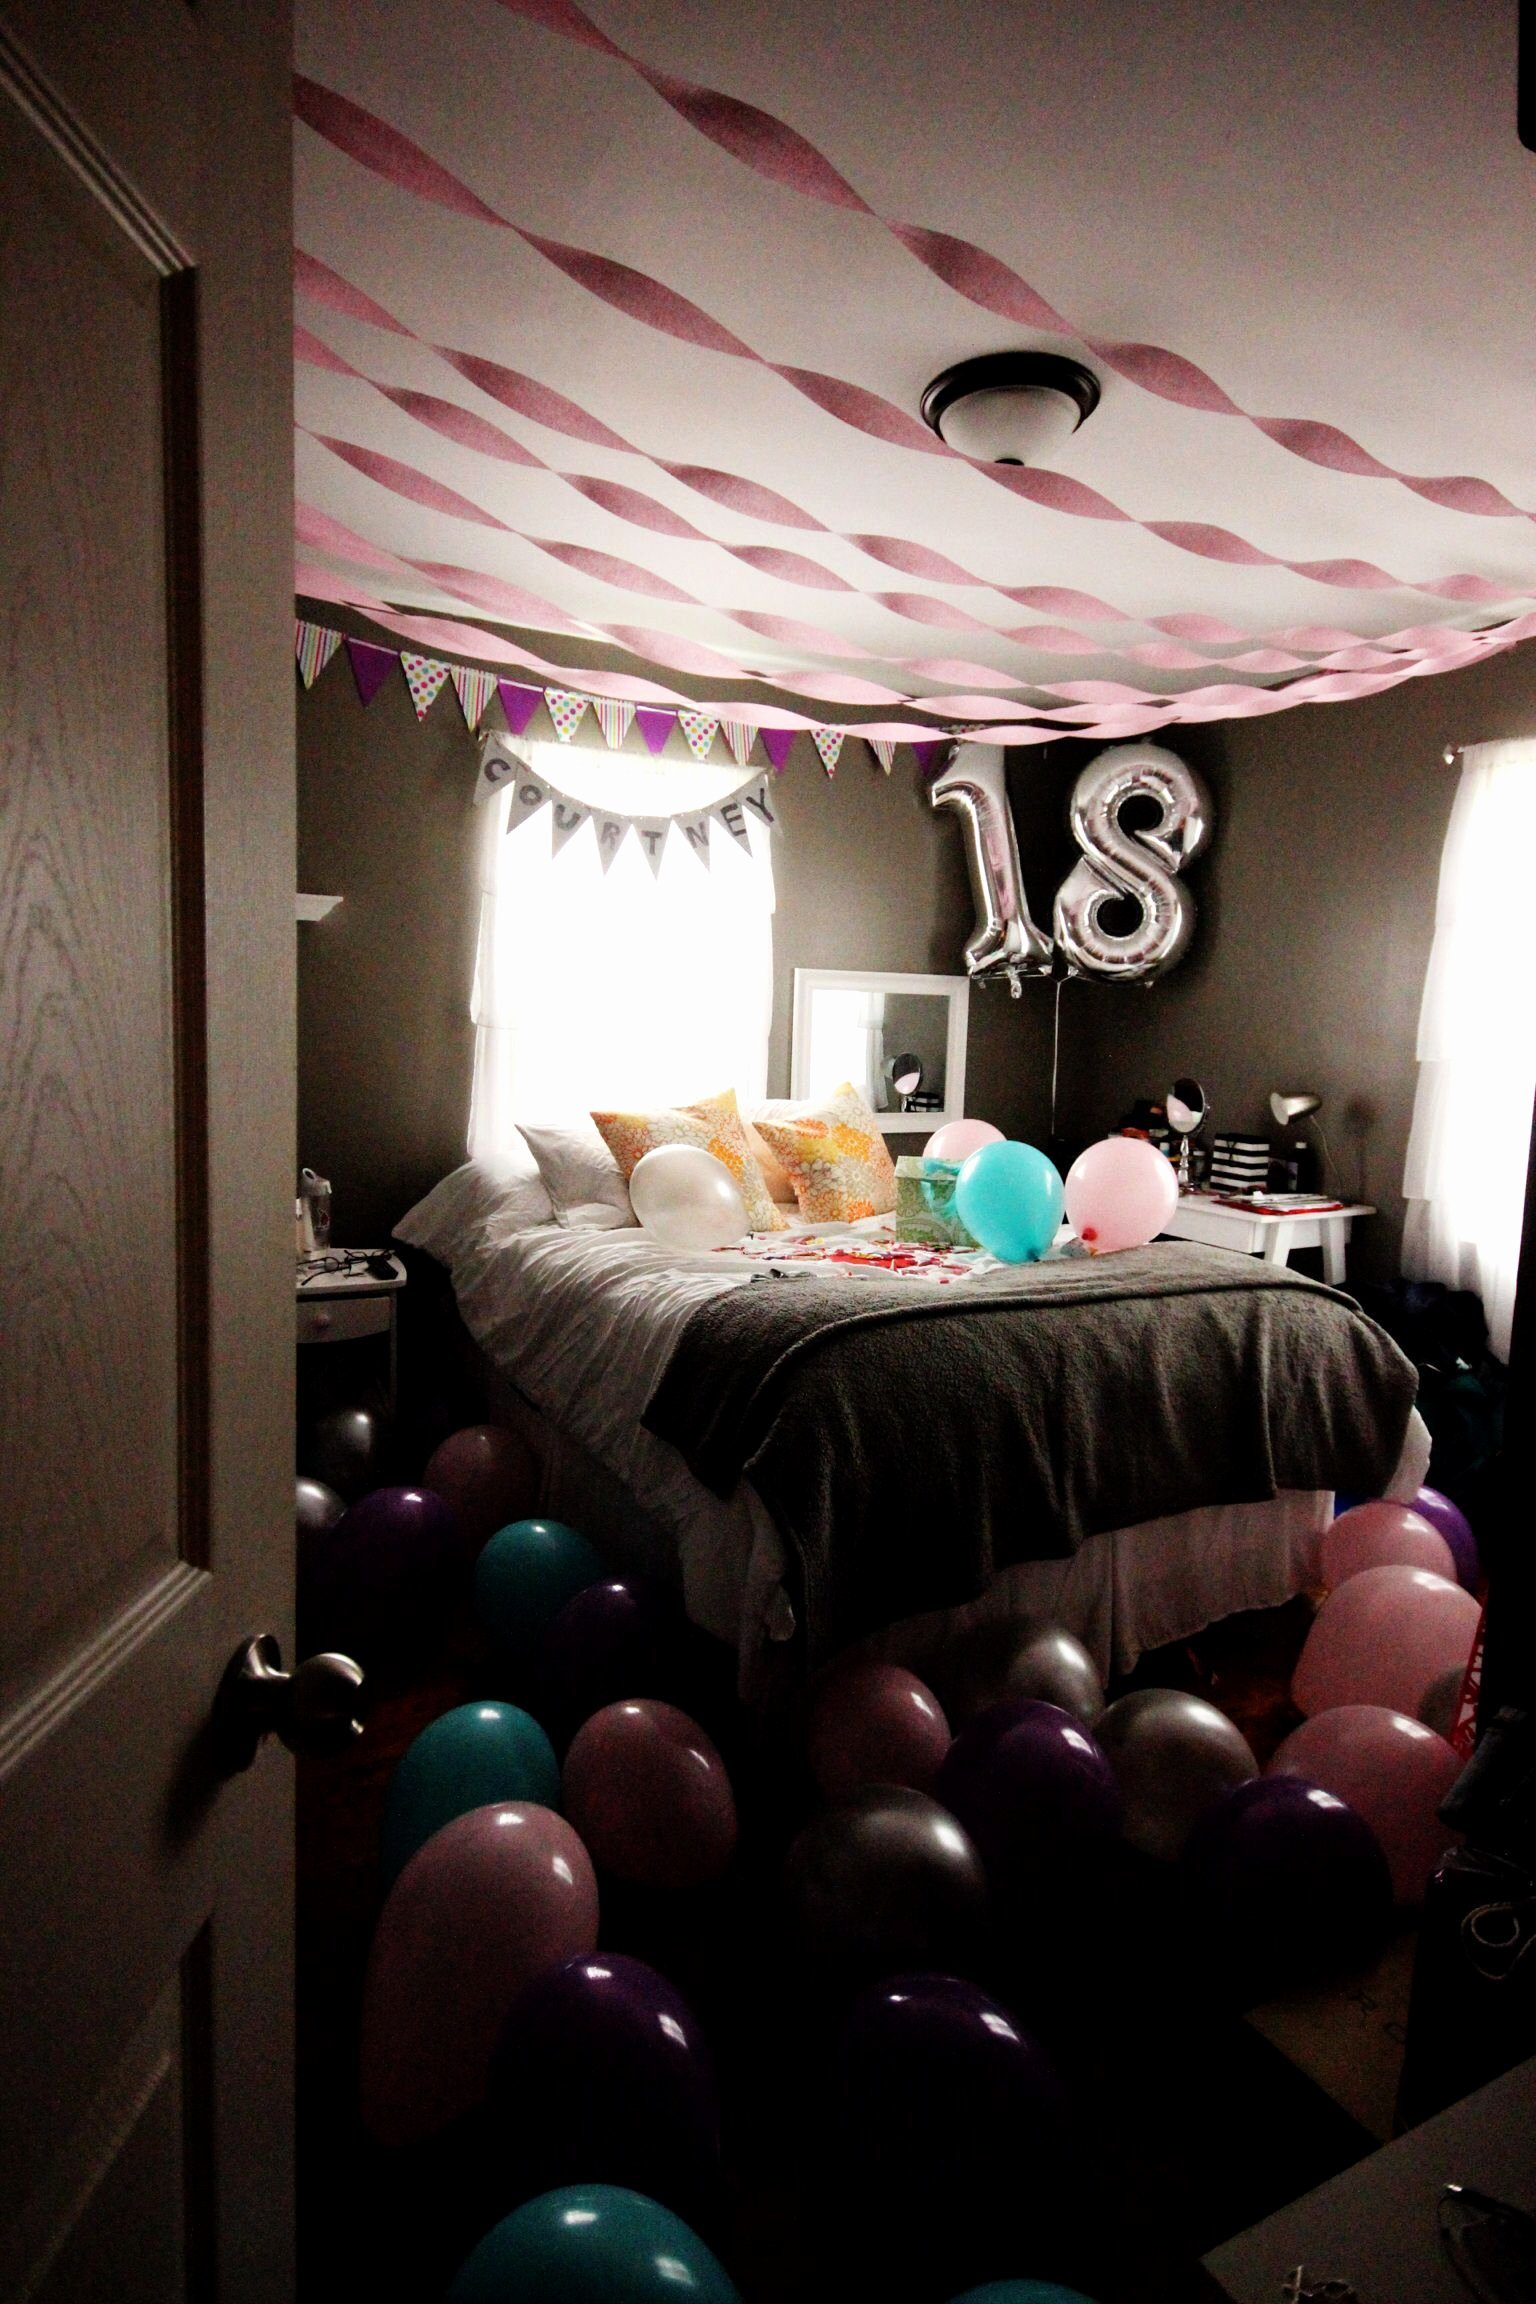 Birthday Decoration Ideas for Living Room Luxury Bedroom Surprise for Birthday Birthday Room Decorations